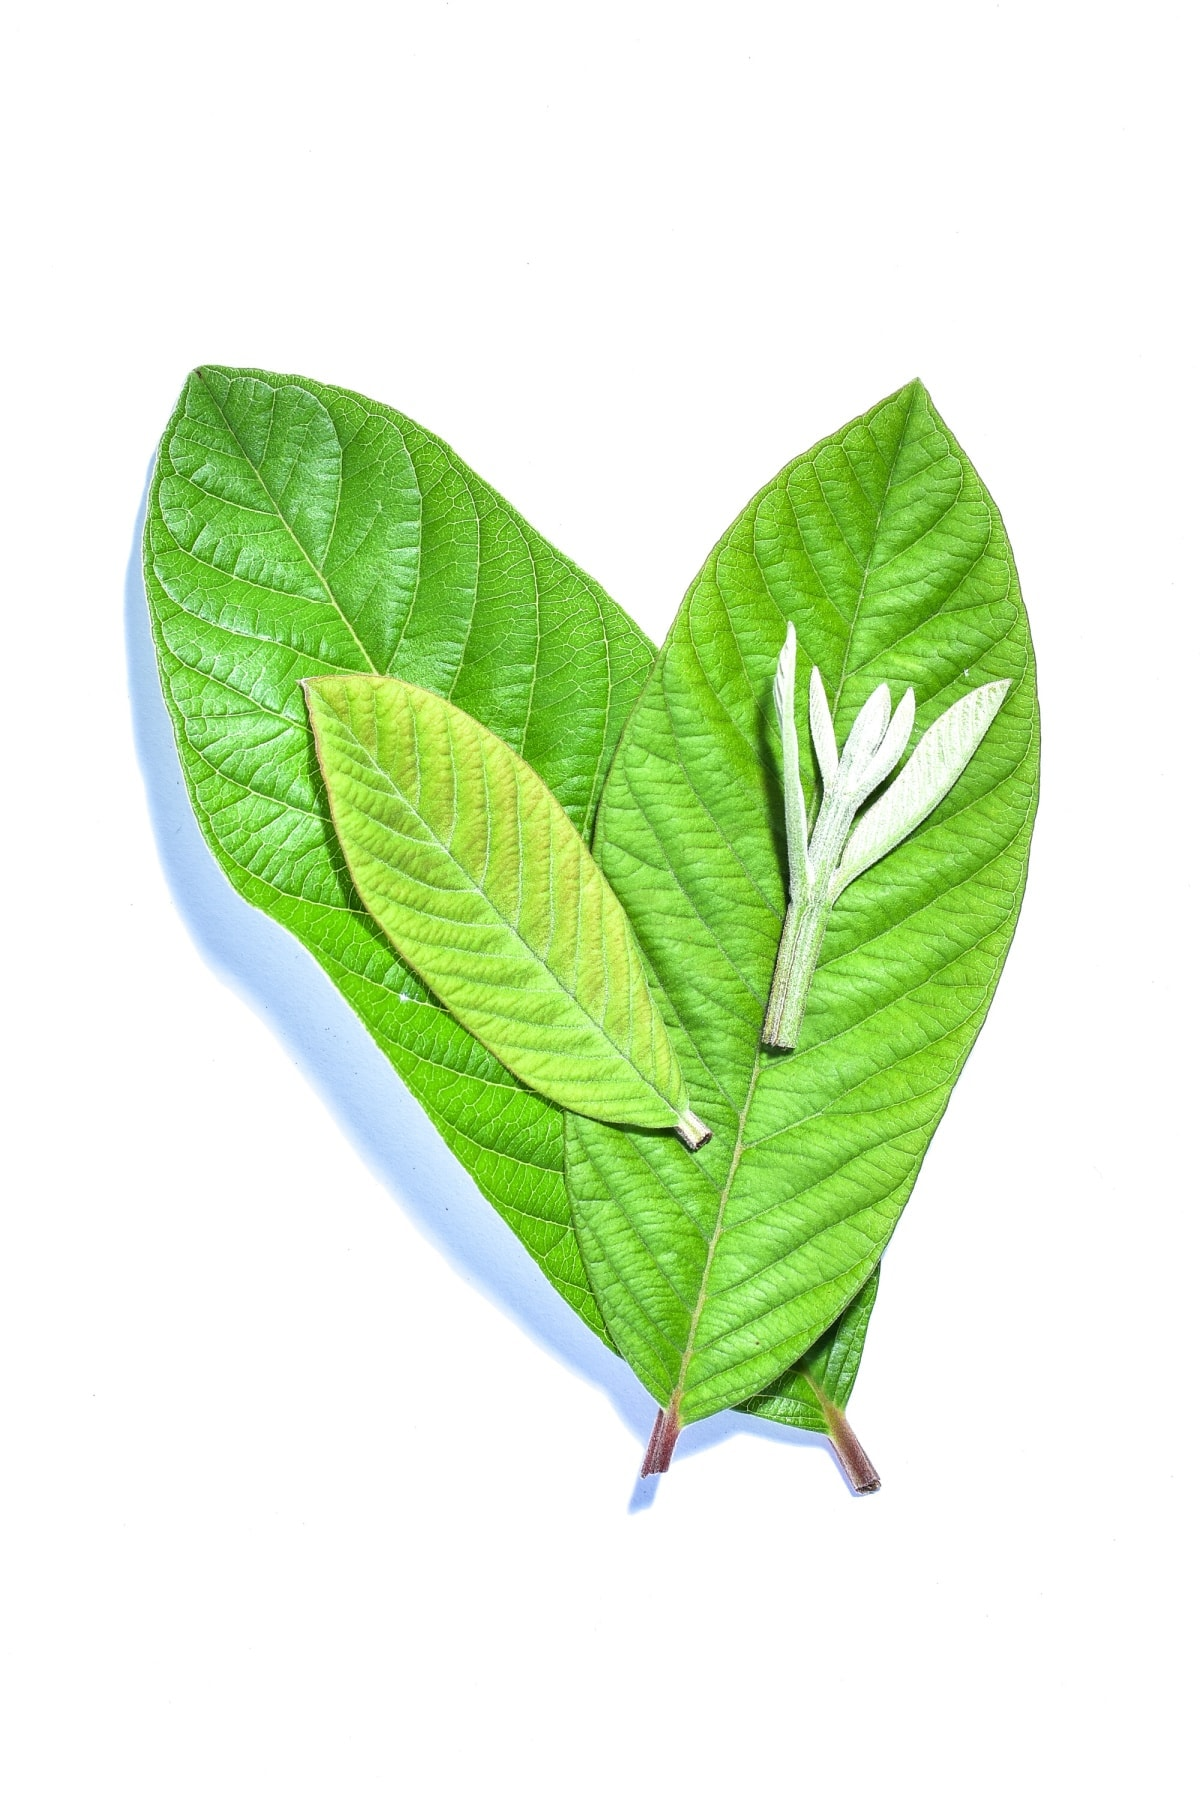 10 Benefits of Guava Leaves